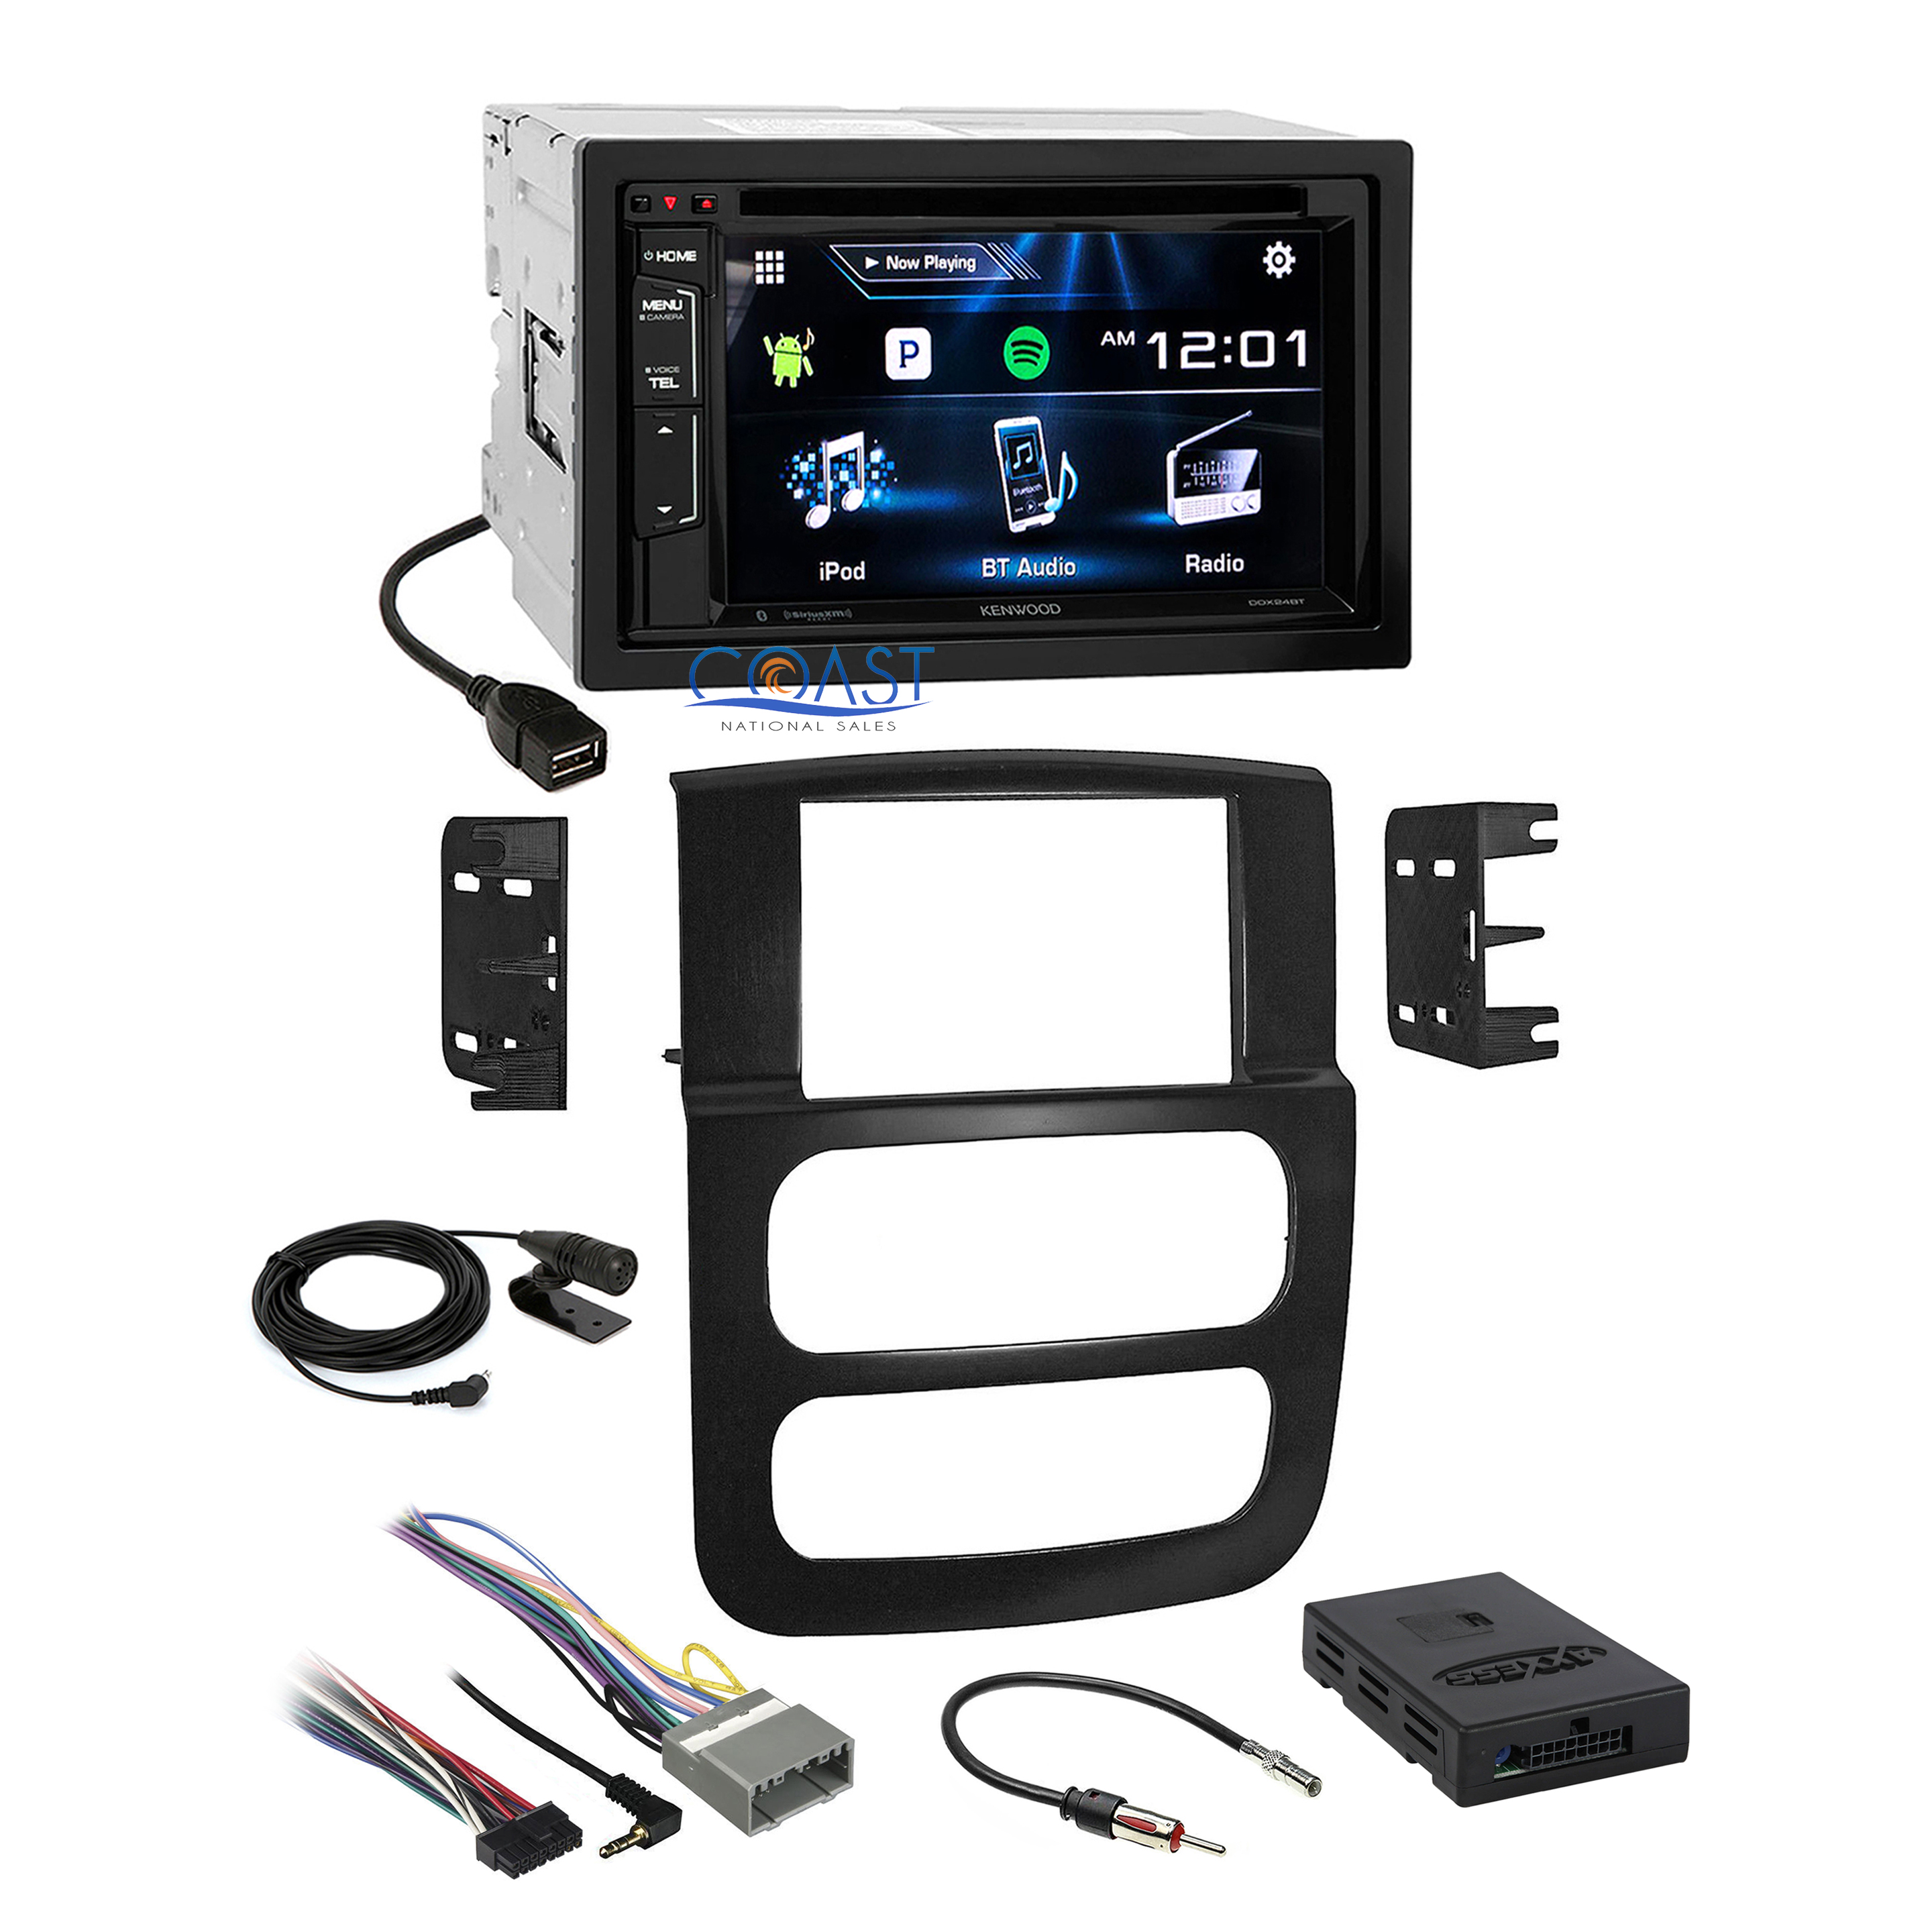 kenwood car siriusxm stereo dash kit amplifier harness for ... dodge ram wiring harness to kenwood dodge ram wiring harness recall #10